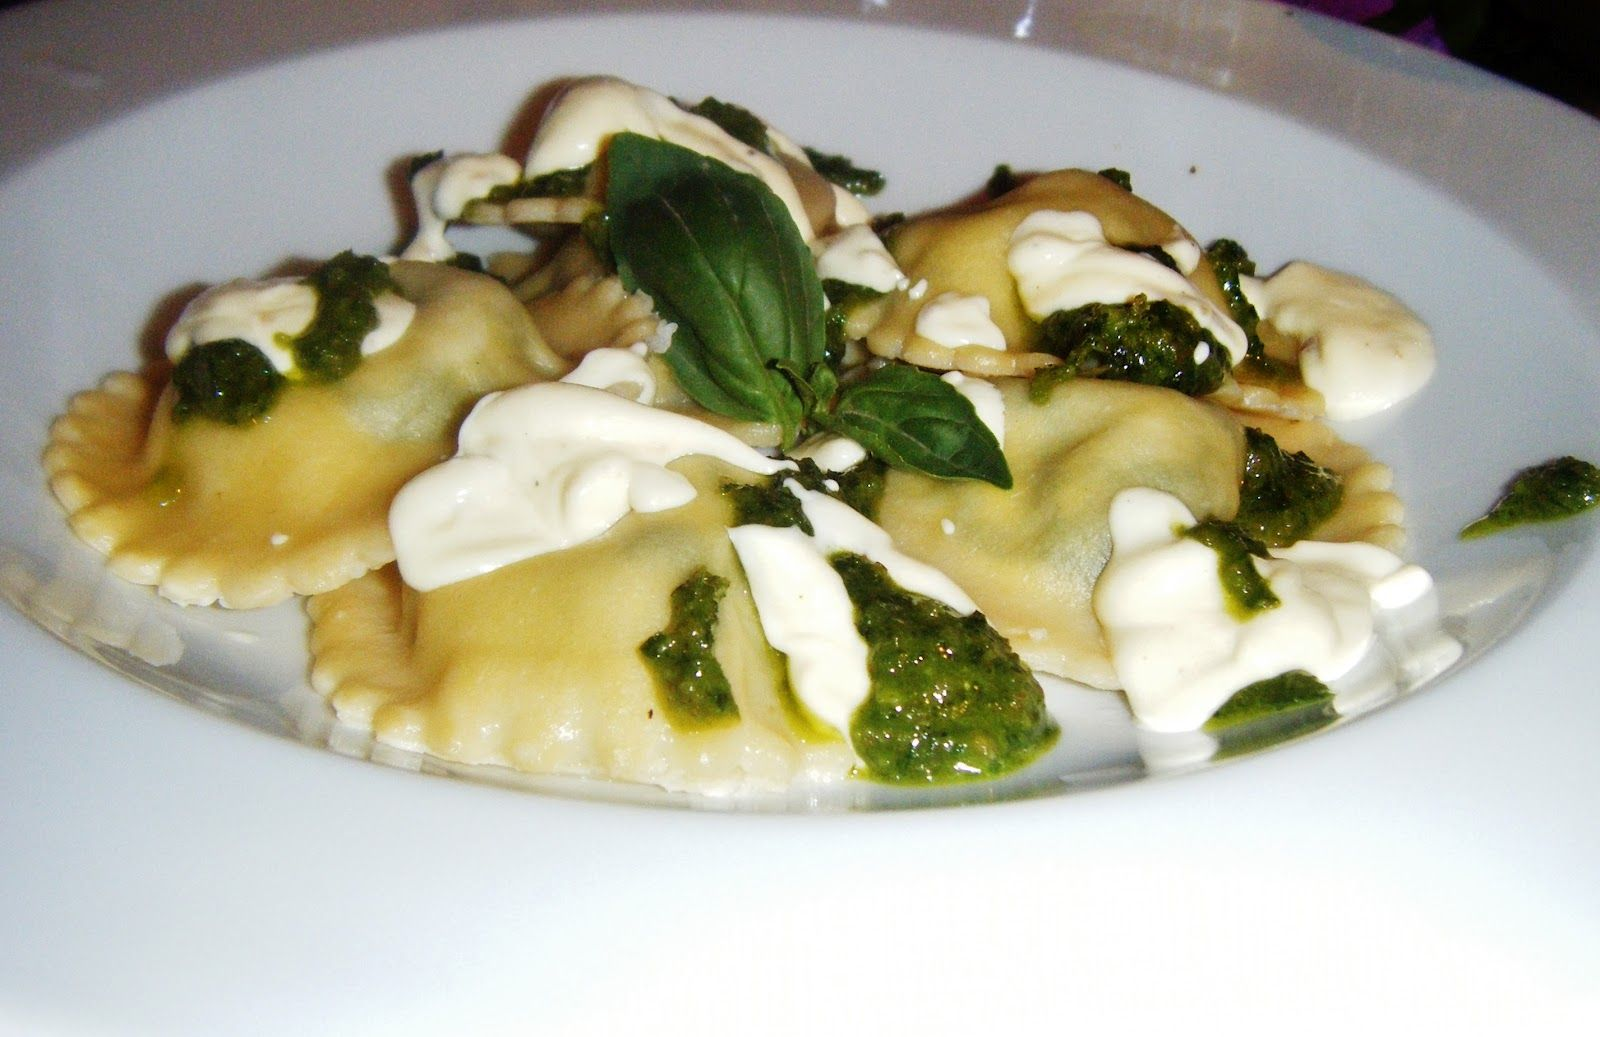 the Best Recipes: Spinach and Goats Cheese Ravioli with Walnut Pesto and a Cream Sauce